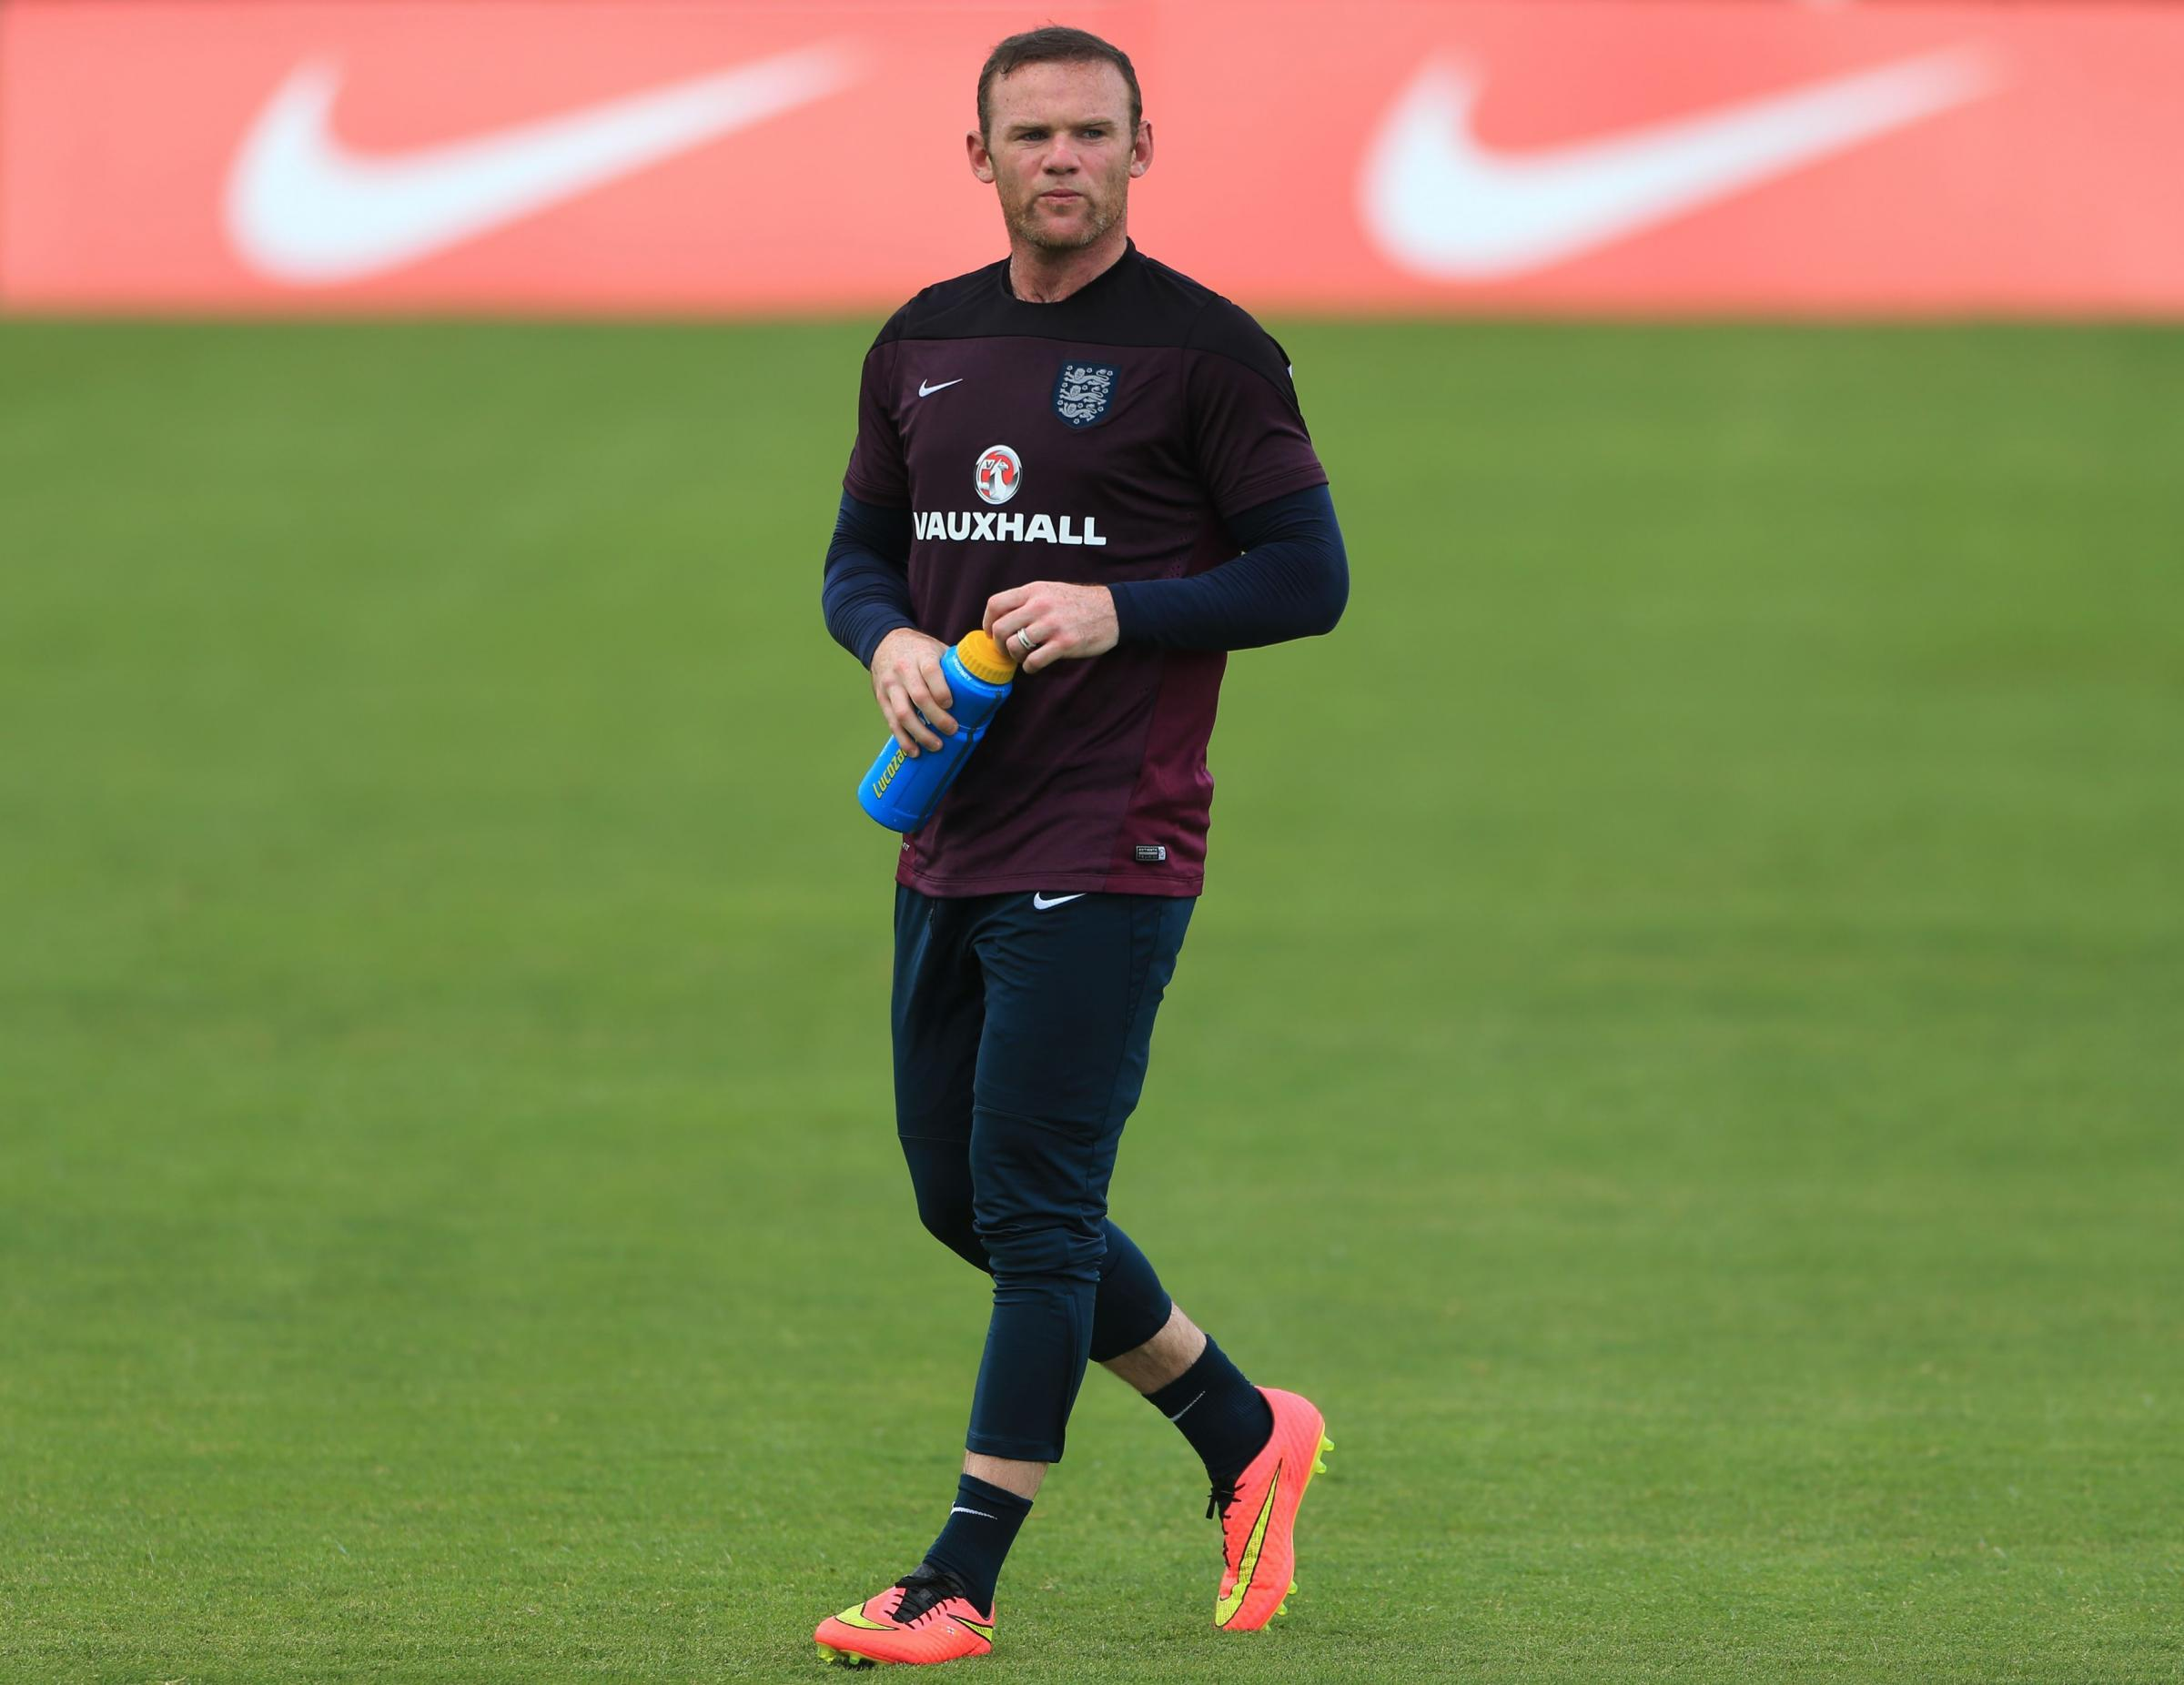 ONE OF THE BEST? Despite his billing, Wayne Rooney has not scored in either of his two previous World Cups